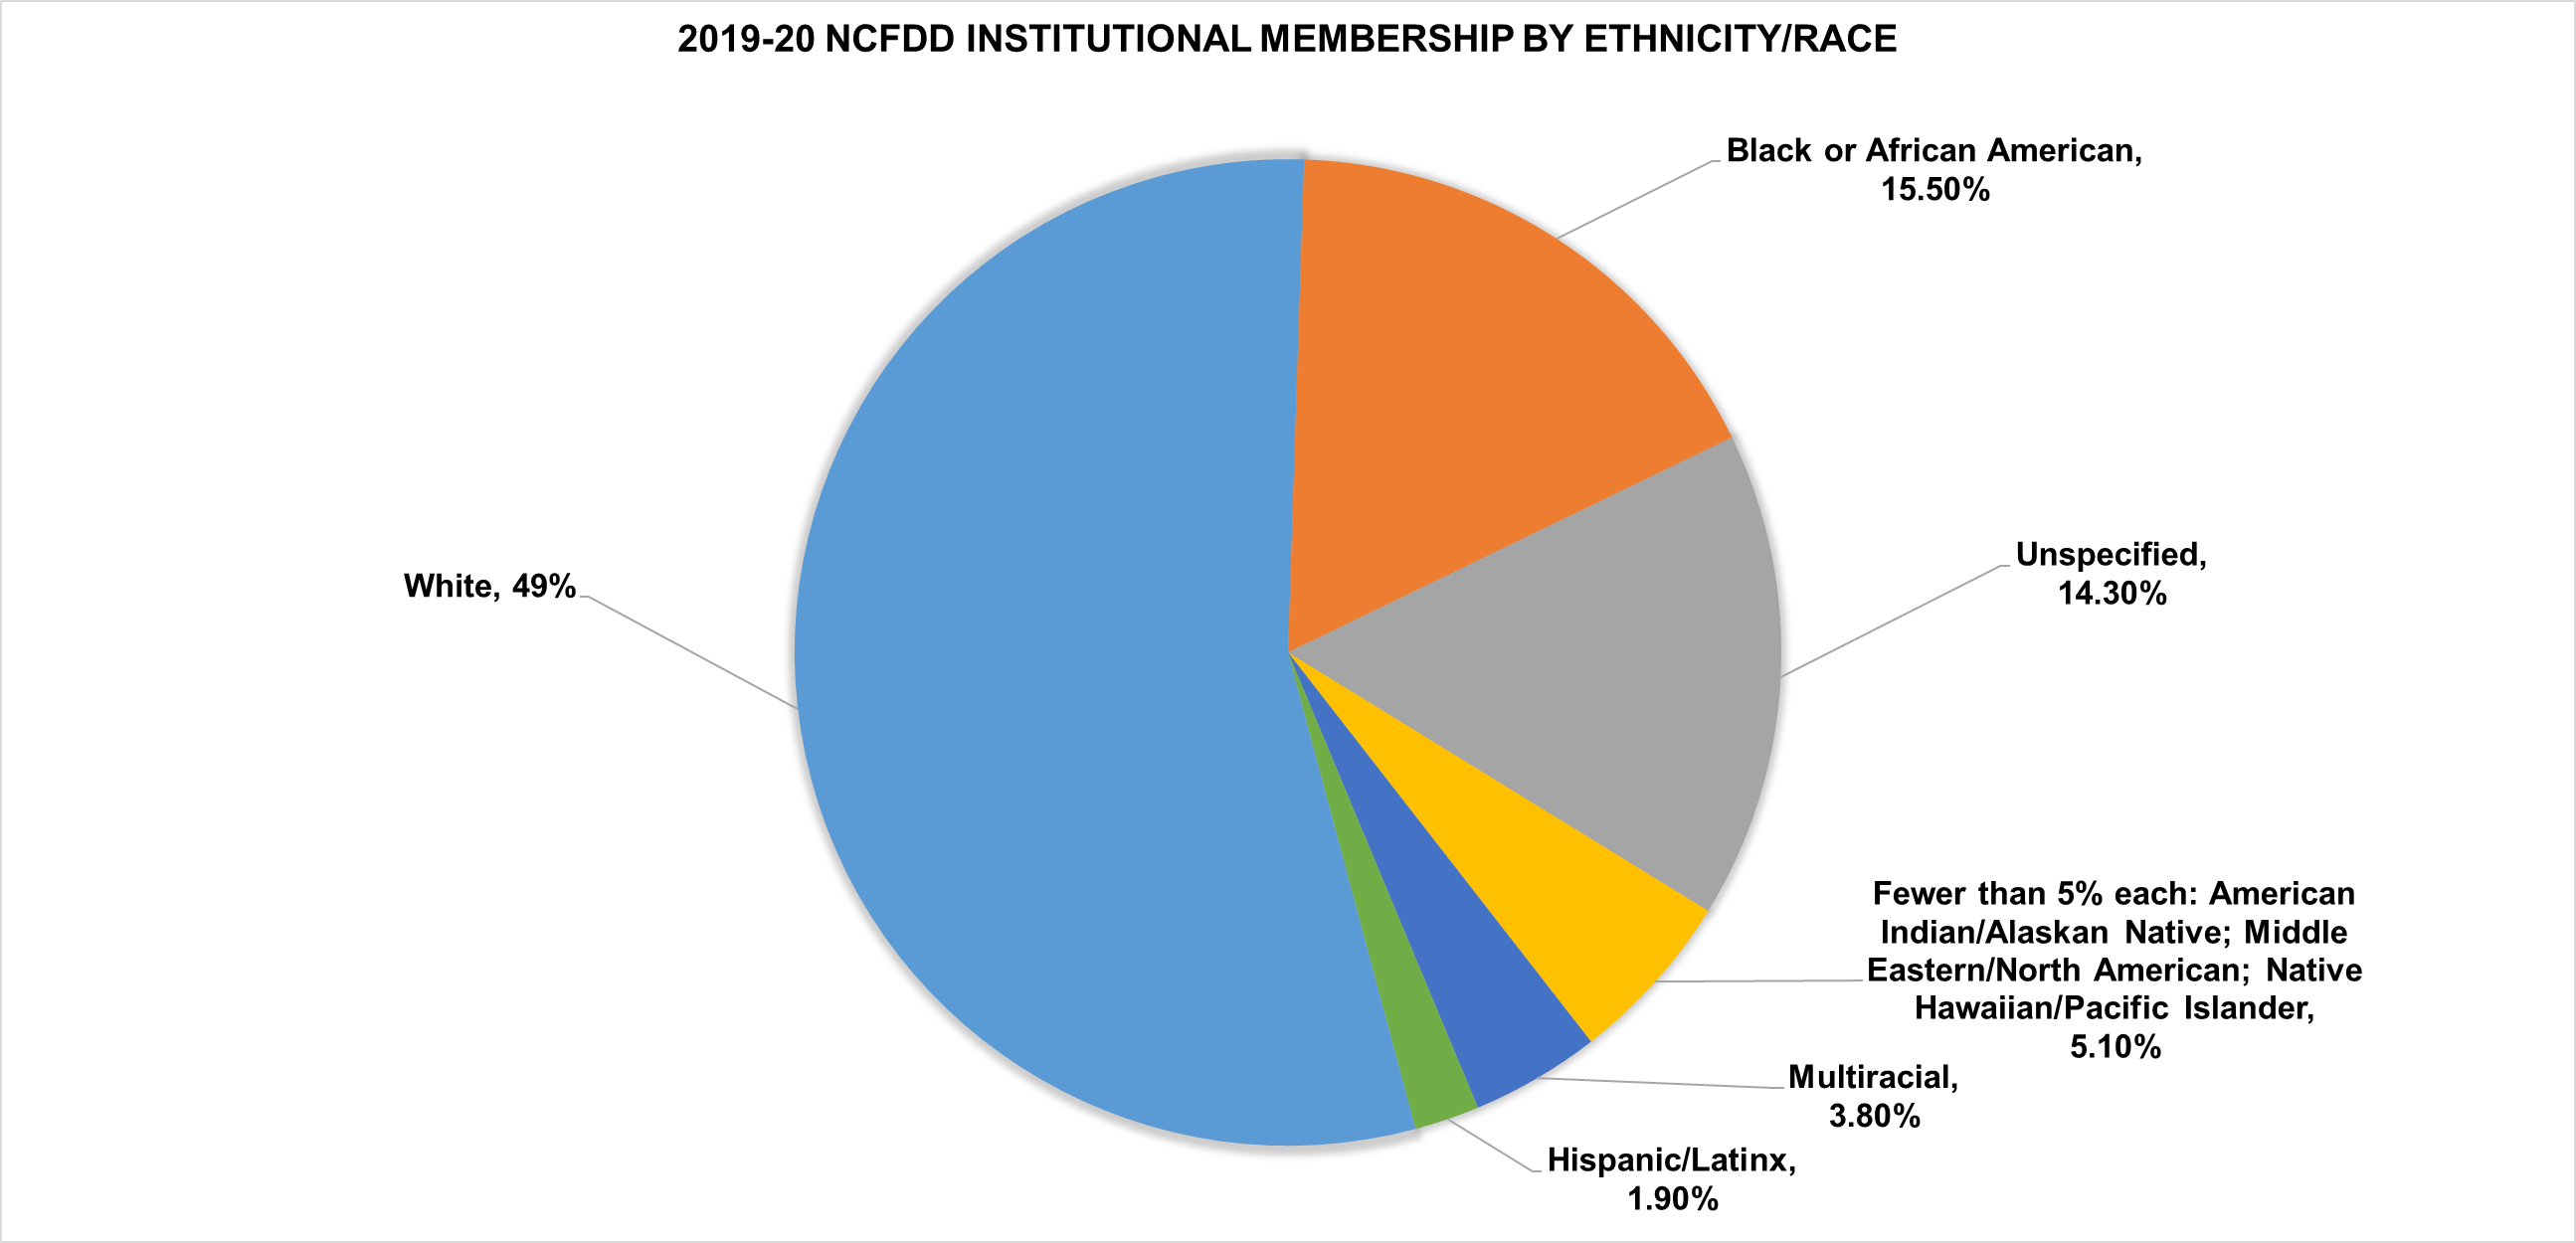 2019-20 NCFDD Institutional Membership by Ethnicity/Race